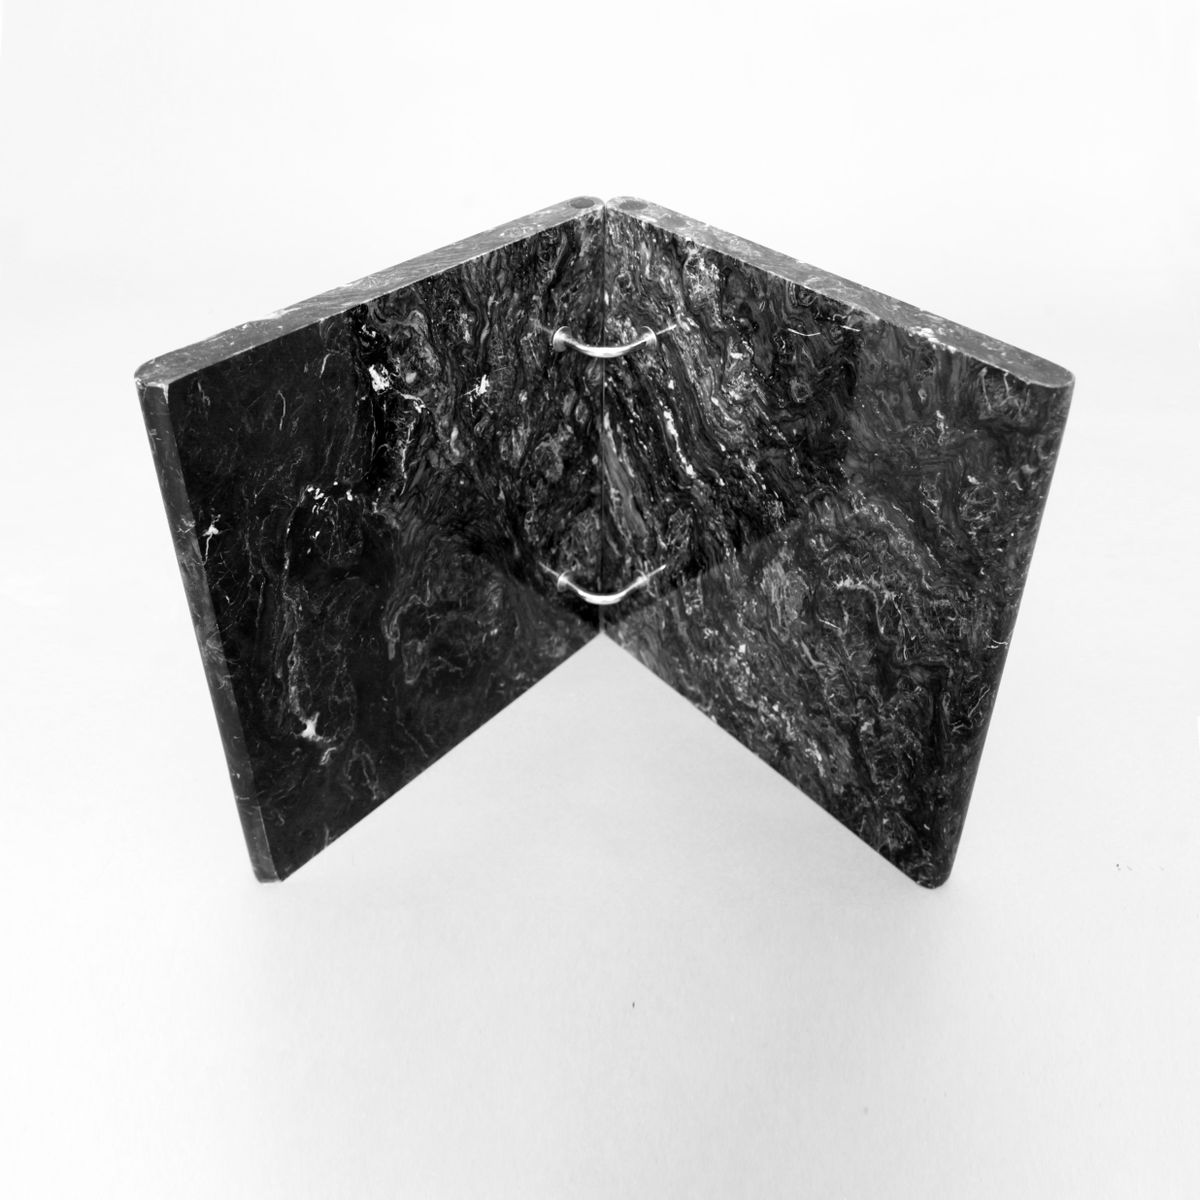 Marble Coffee Table Hk: Small Black Carrara Marble & Glass Coffee Table, 1980s For